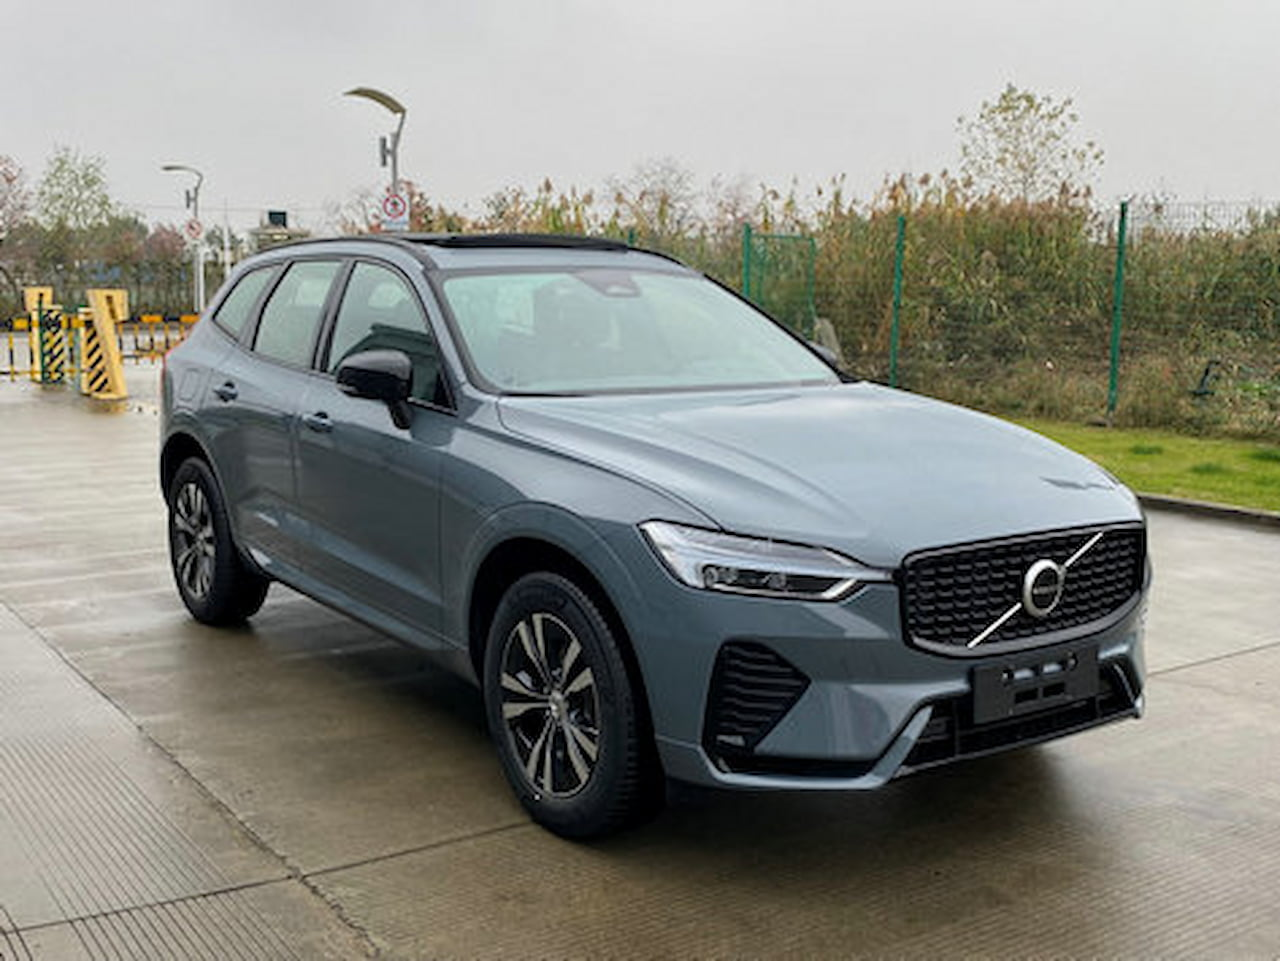 2022 Volvo XC60 front three quarters right side